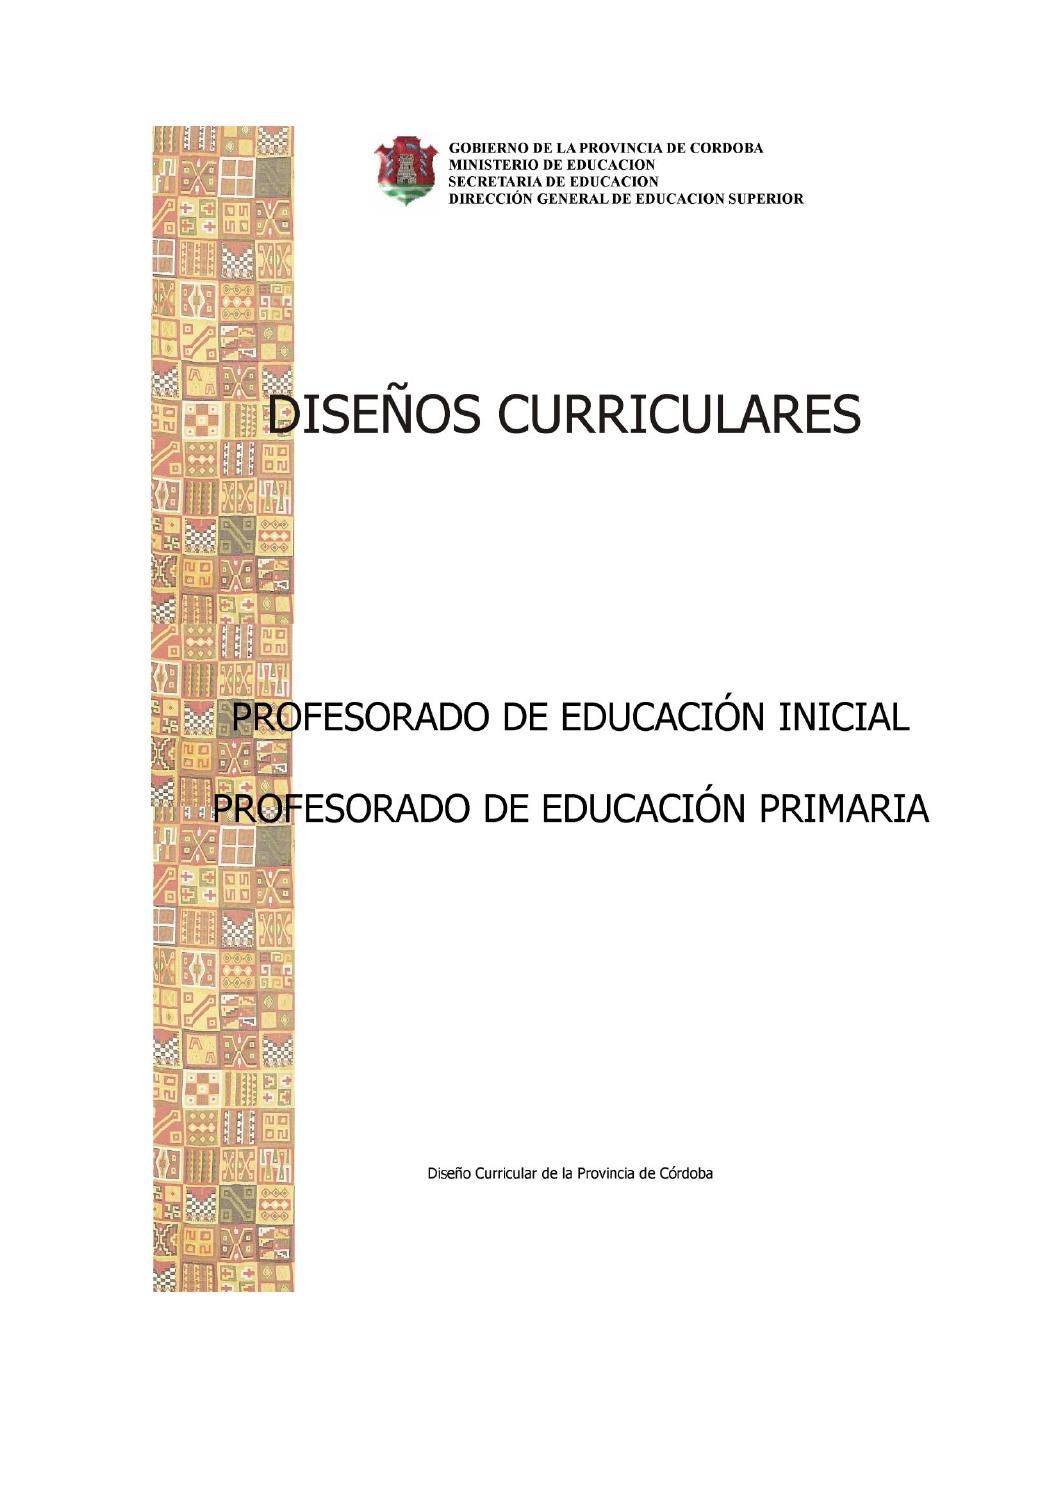 Disenio curr primaria inicial 2015 by Angeles Ulla - issuu